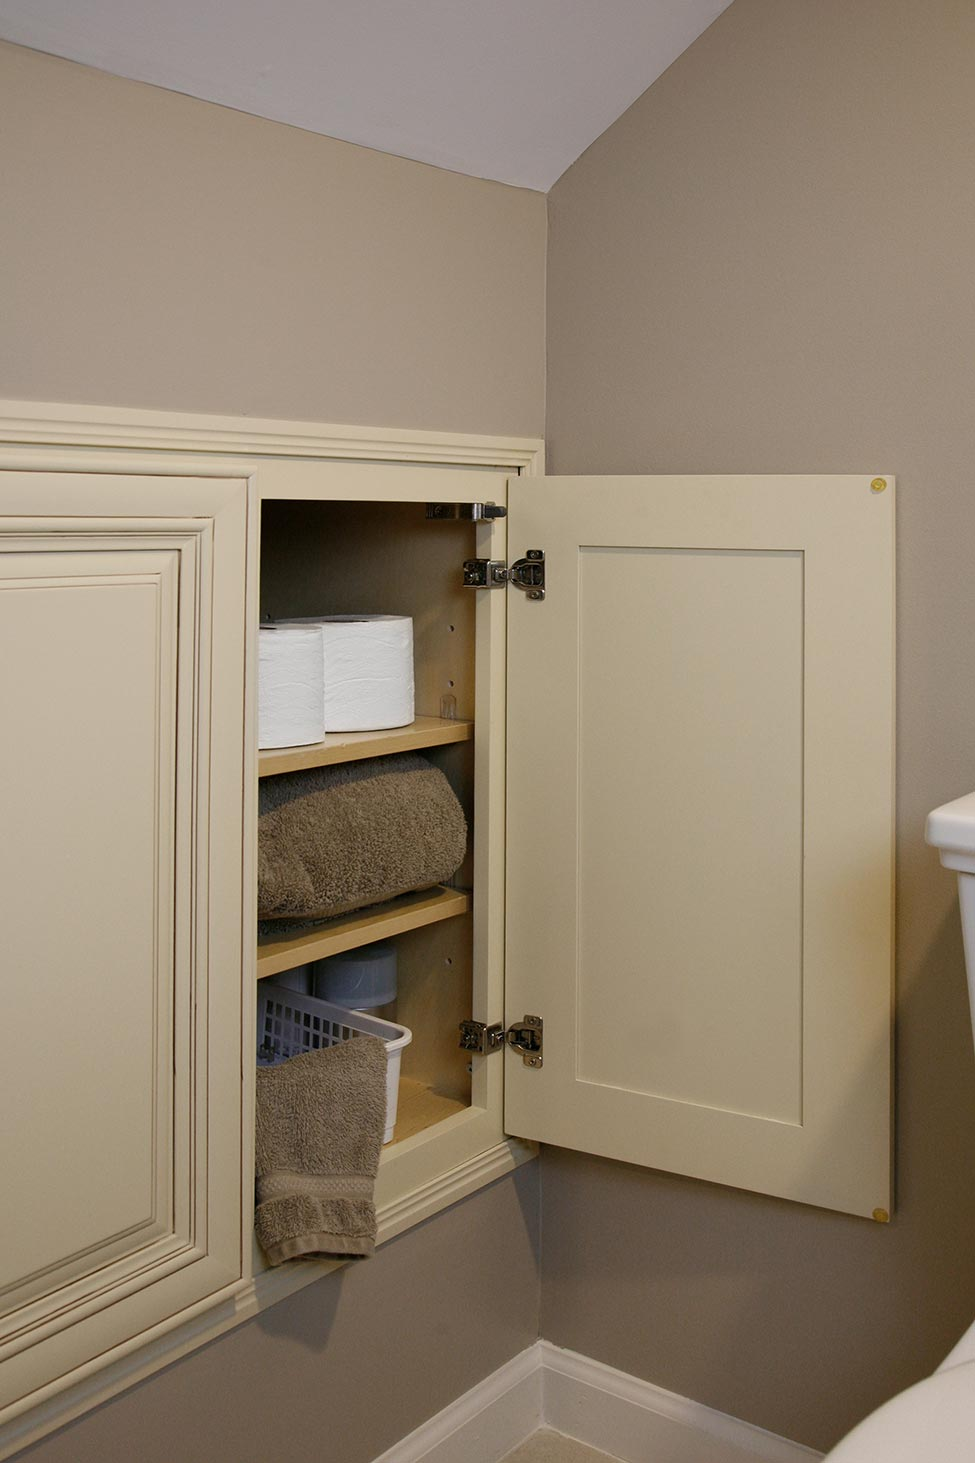 Built-in storage in second bathroom